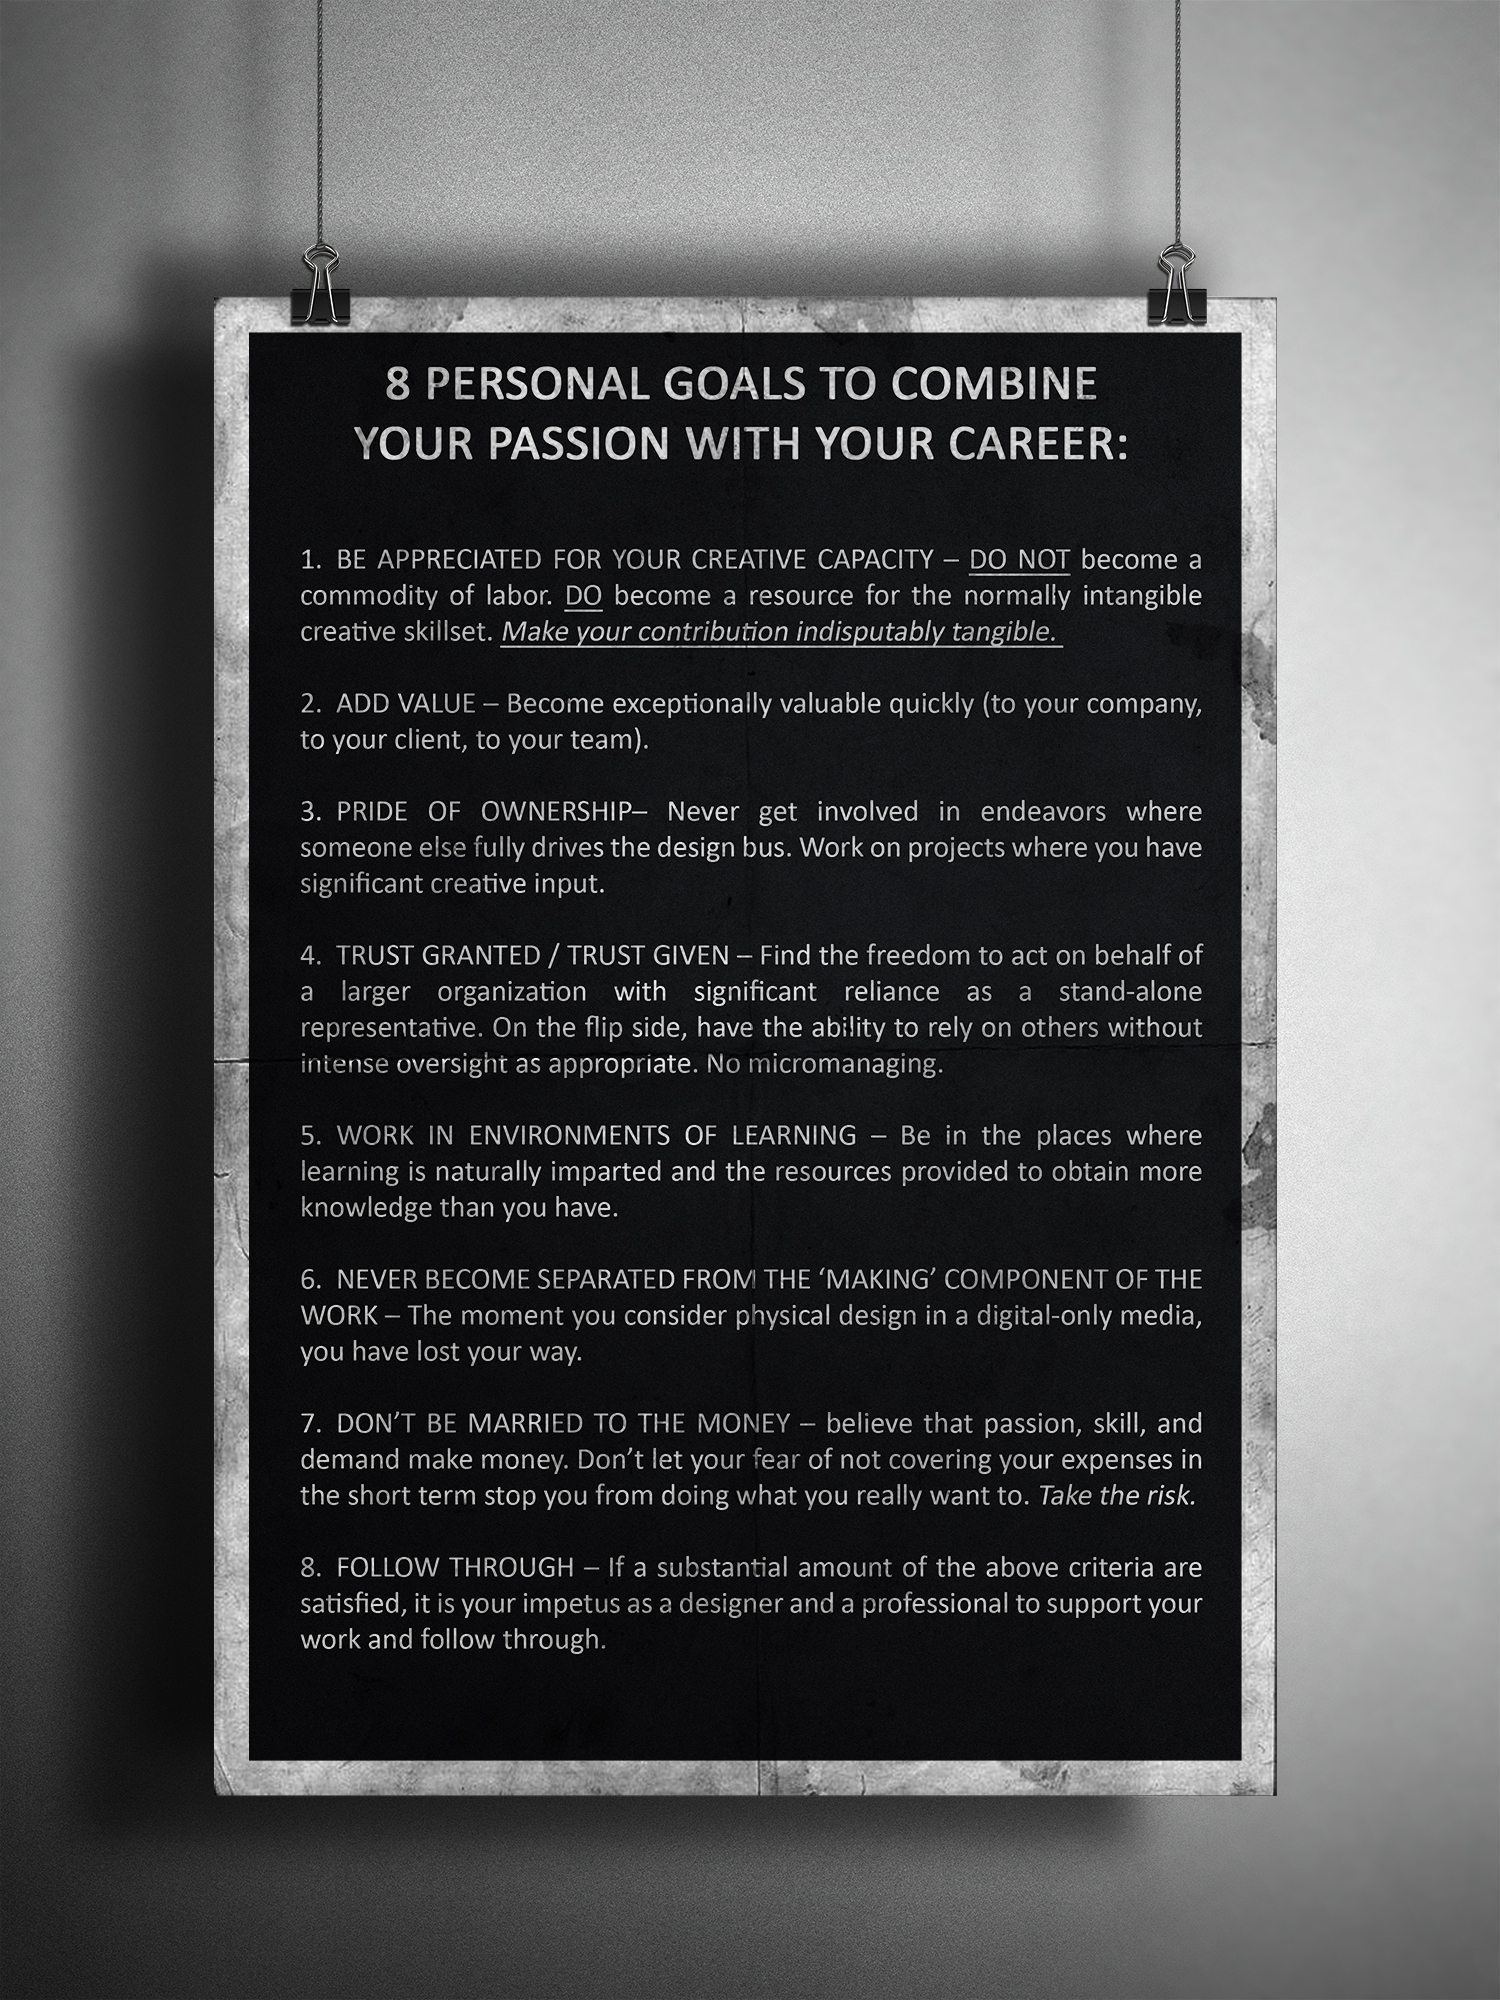 eight-personal-goals-combine-passion-career.jpg